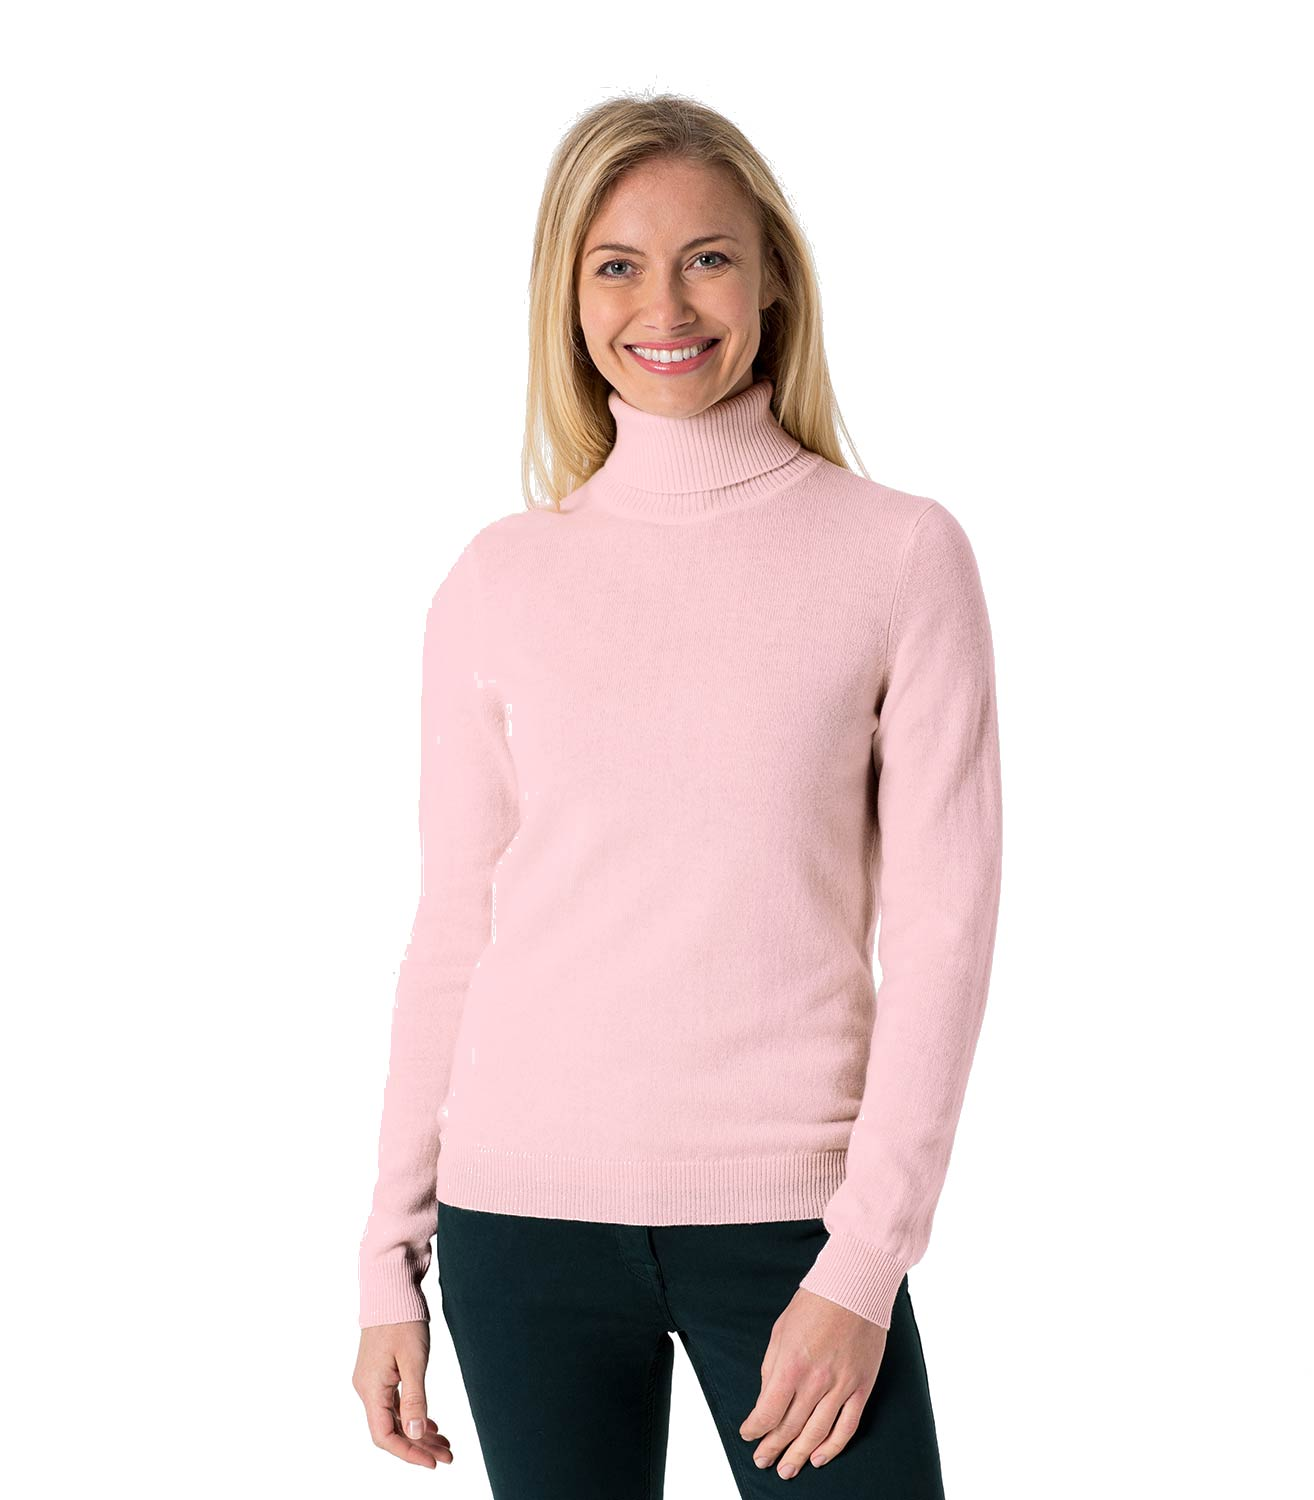 Get wrapped up in cozy women's jumpers & sweaters from Gap. Choose from a selection of ladies' jumpers for every season. True Soft V-Neck Pullover Sweater £ True Soft Open-Front Cardigan Sweater £ True Soft Open-Front Cardigan Sweater £ True Soft Open-Front Cardigan Sweater.